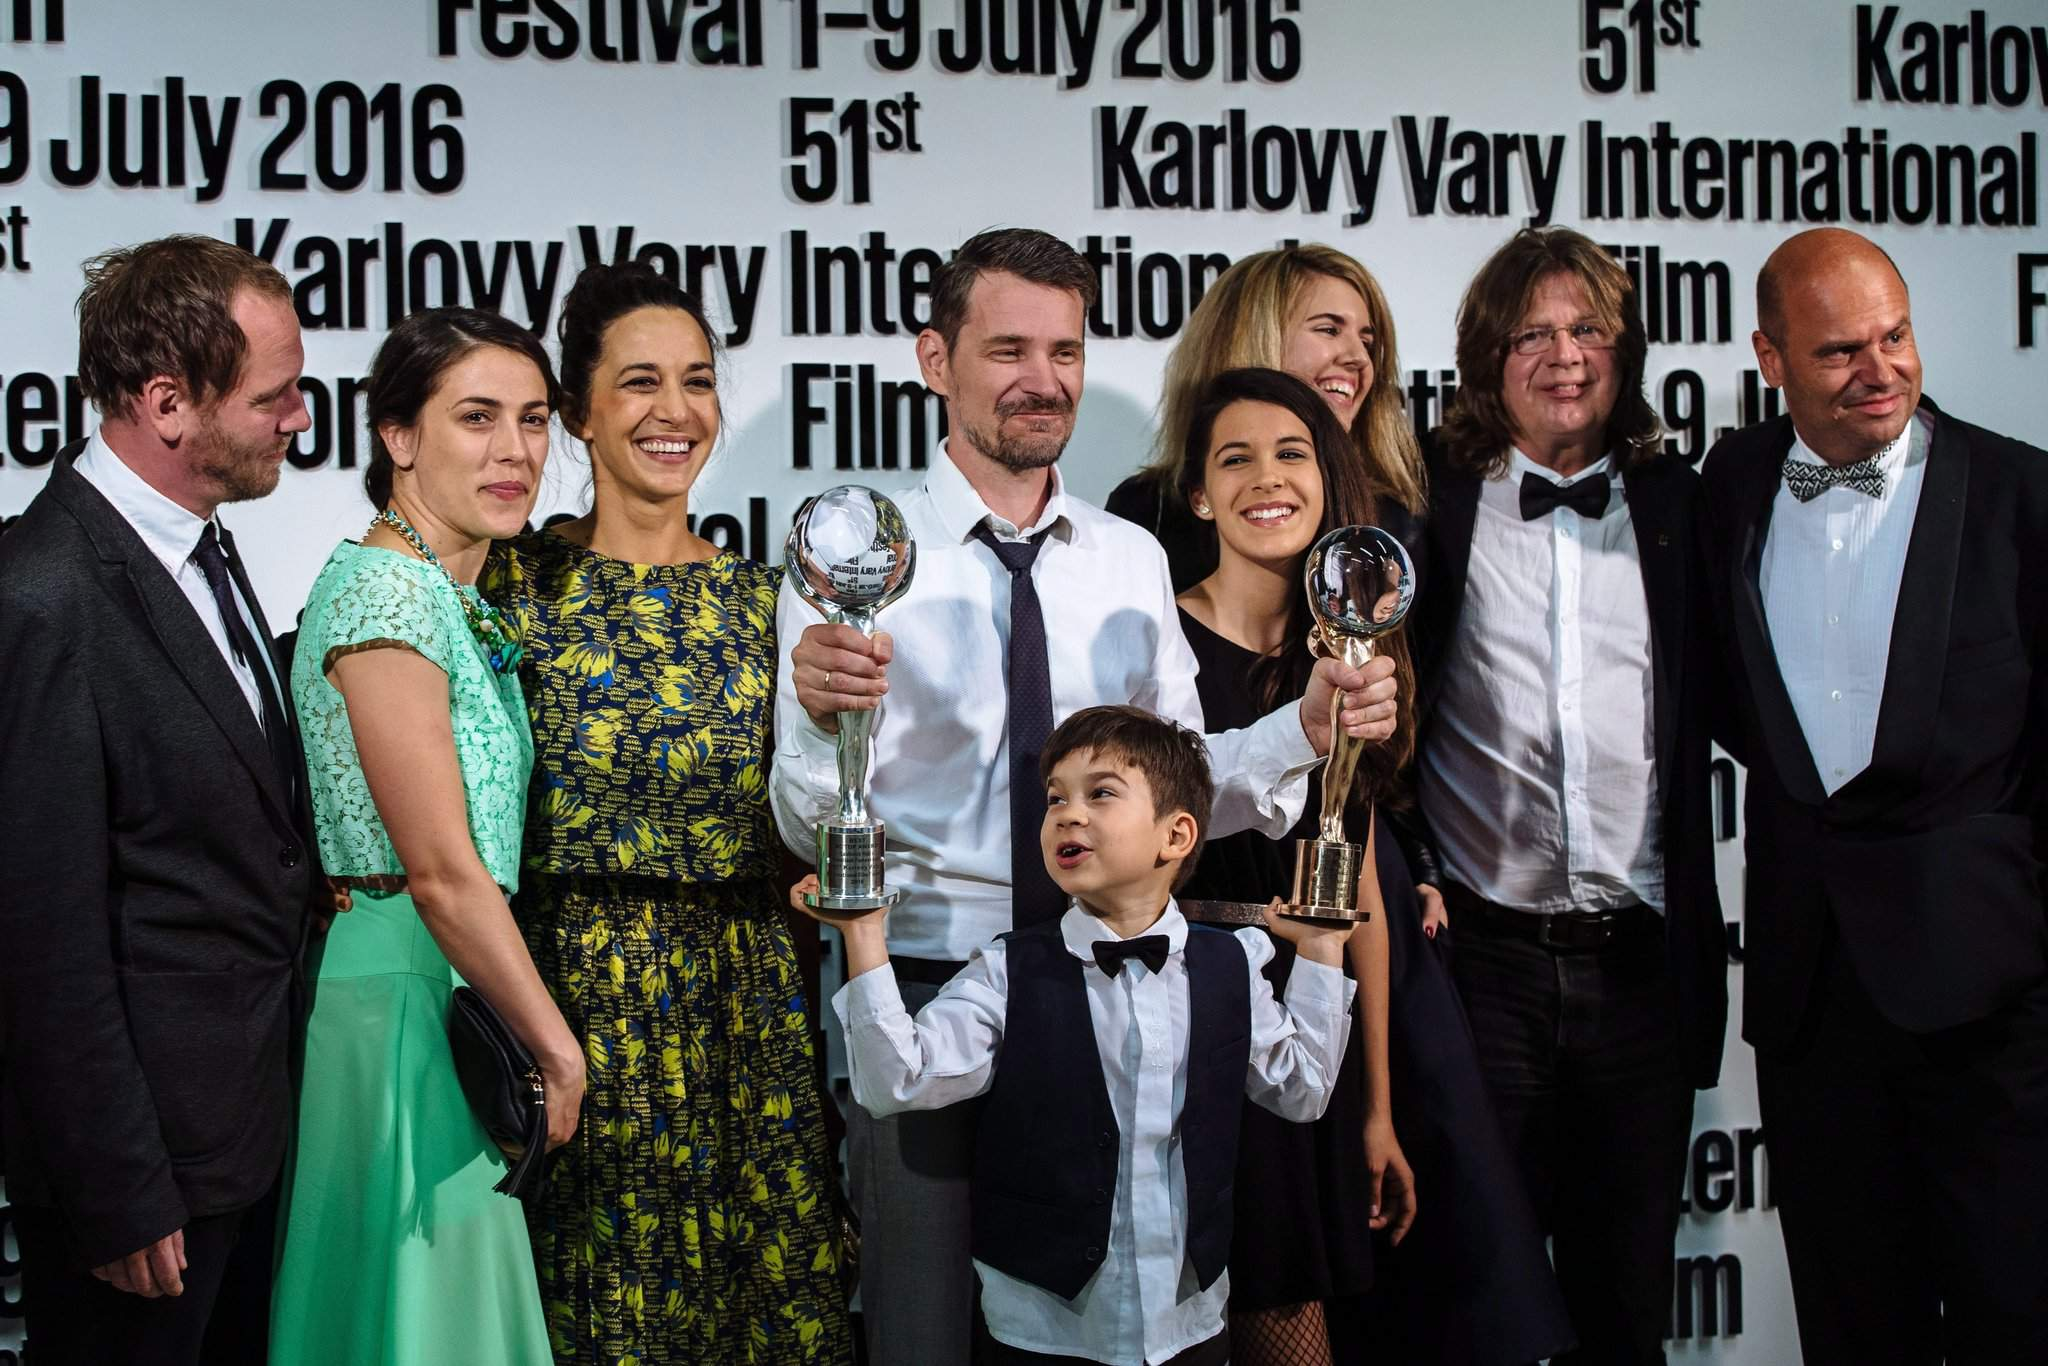 Hungarian entry wins Karlovy Vary film festival main award – VIDEOS